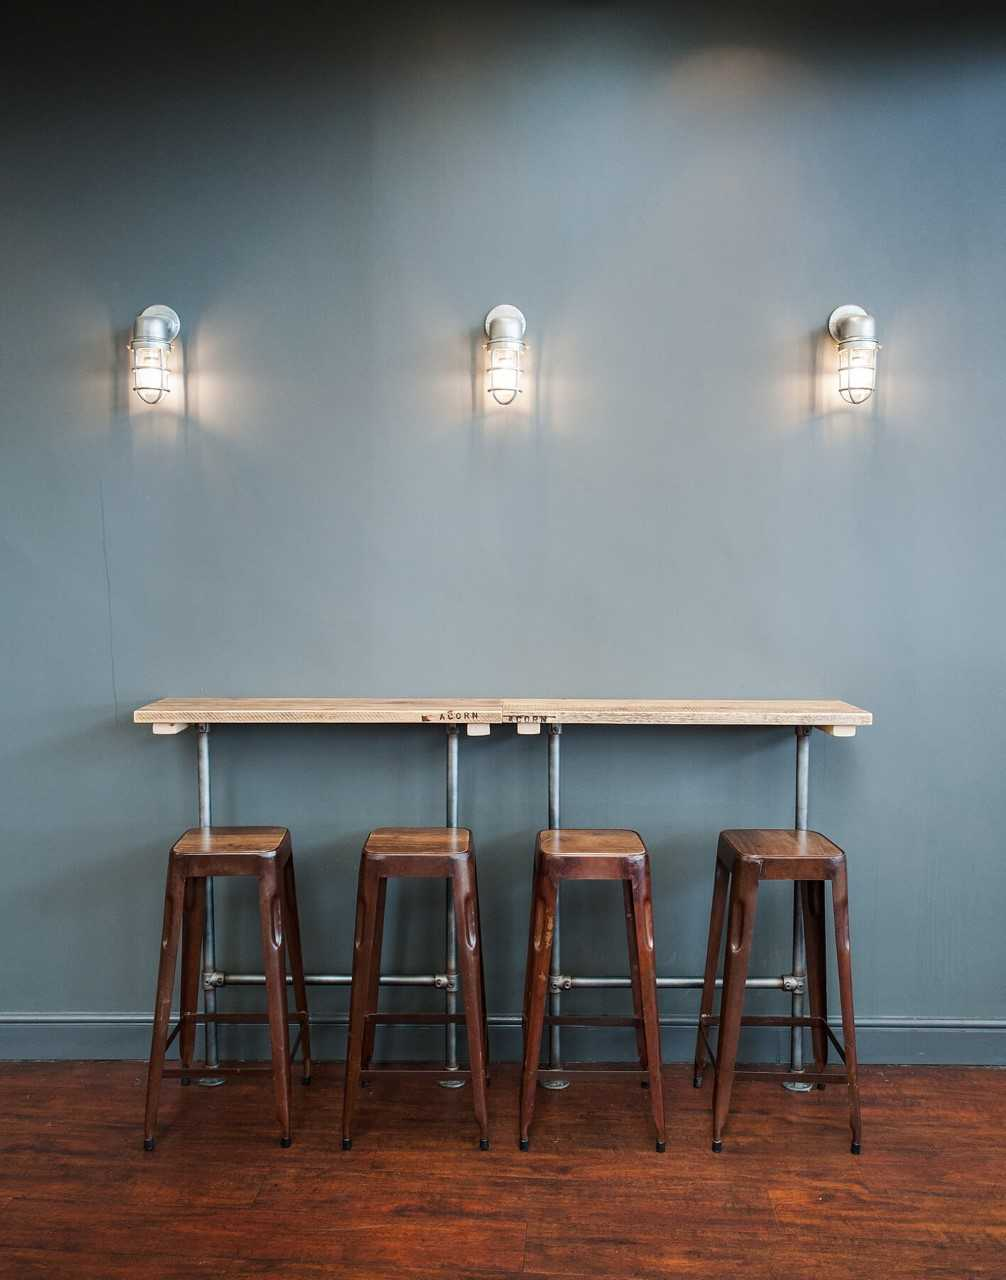 Industrial lighting over a study space